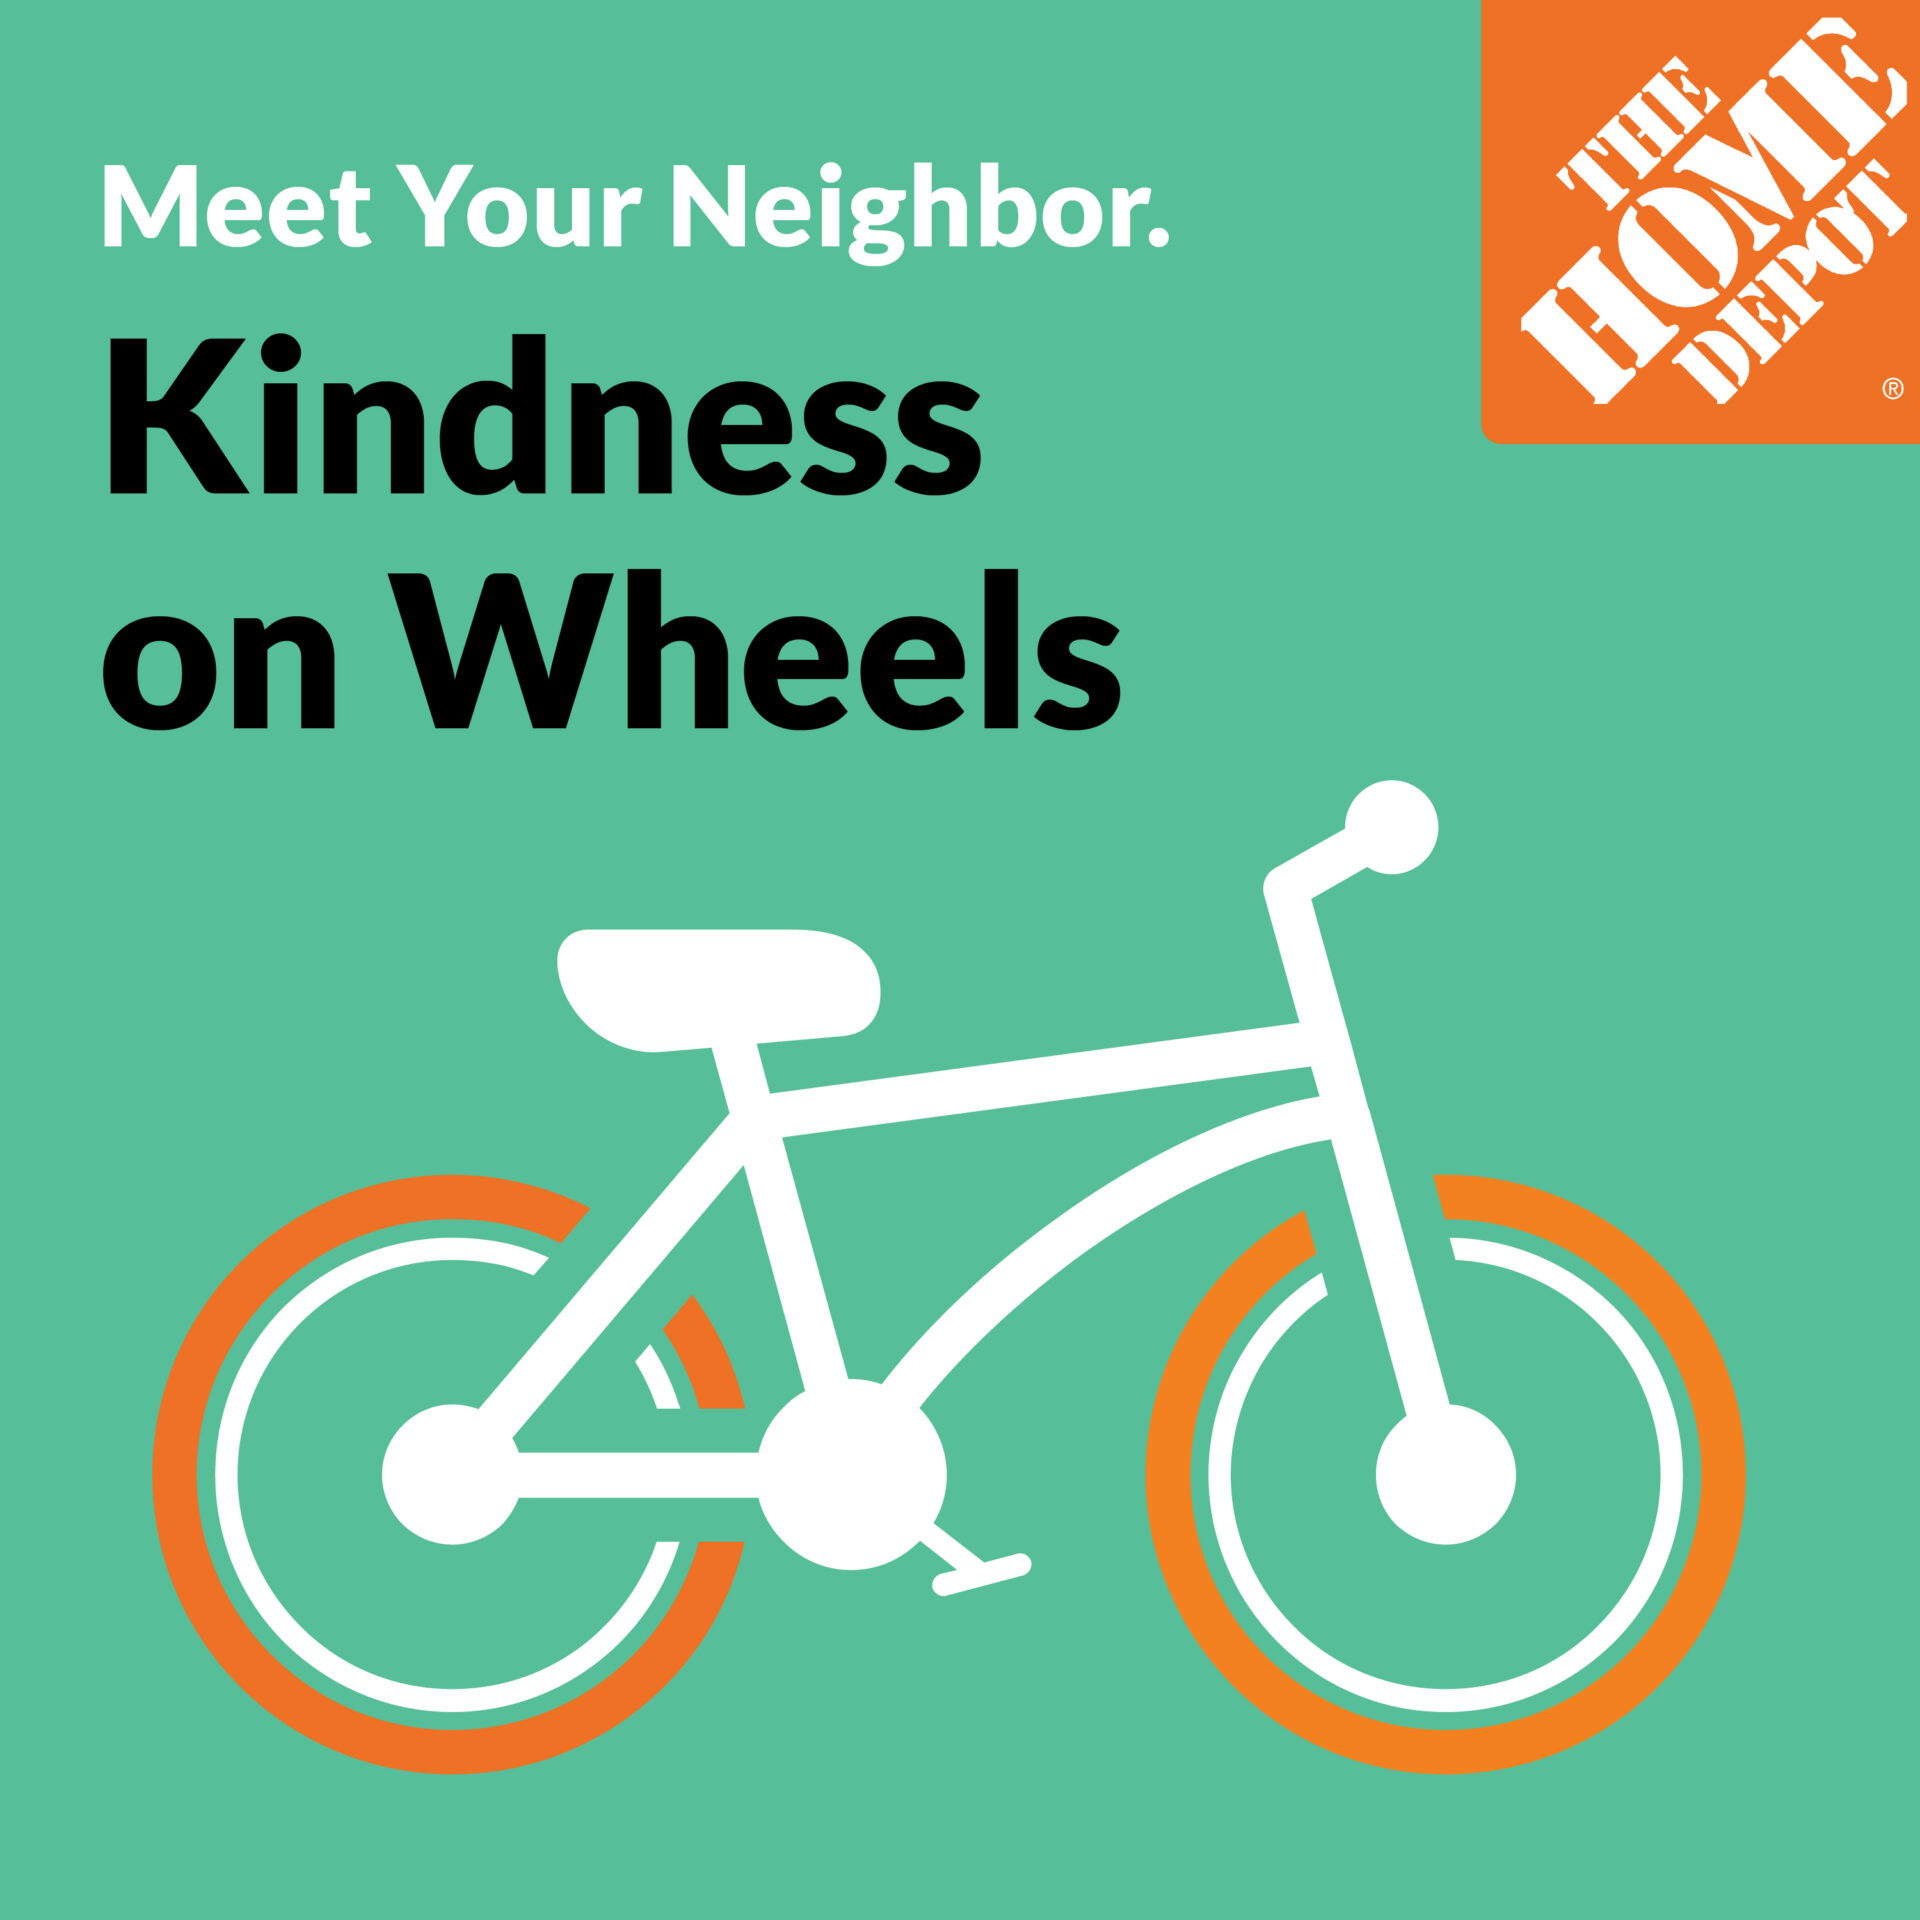 Kindness on Wheels